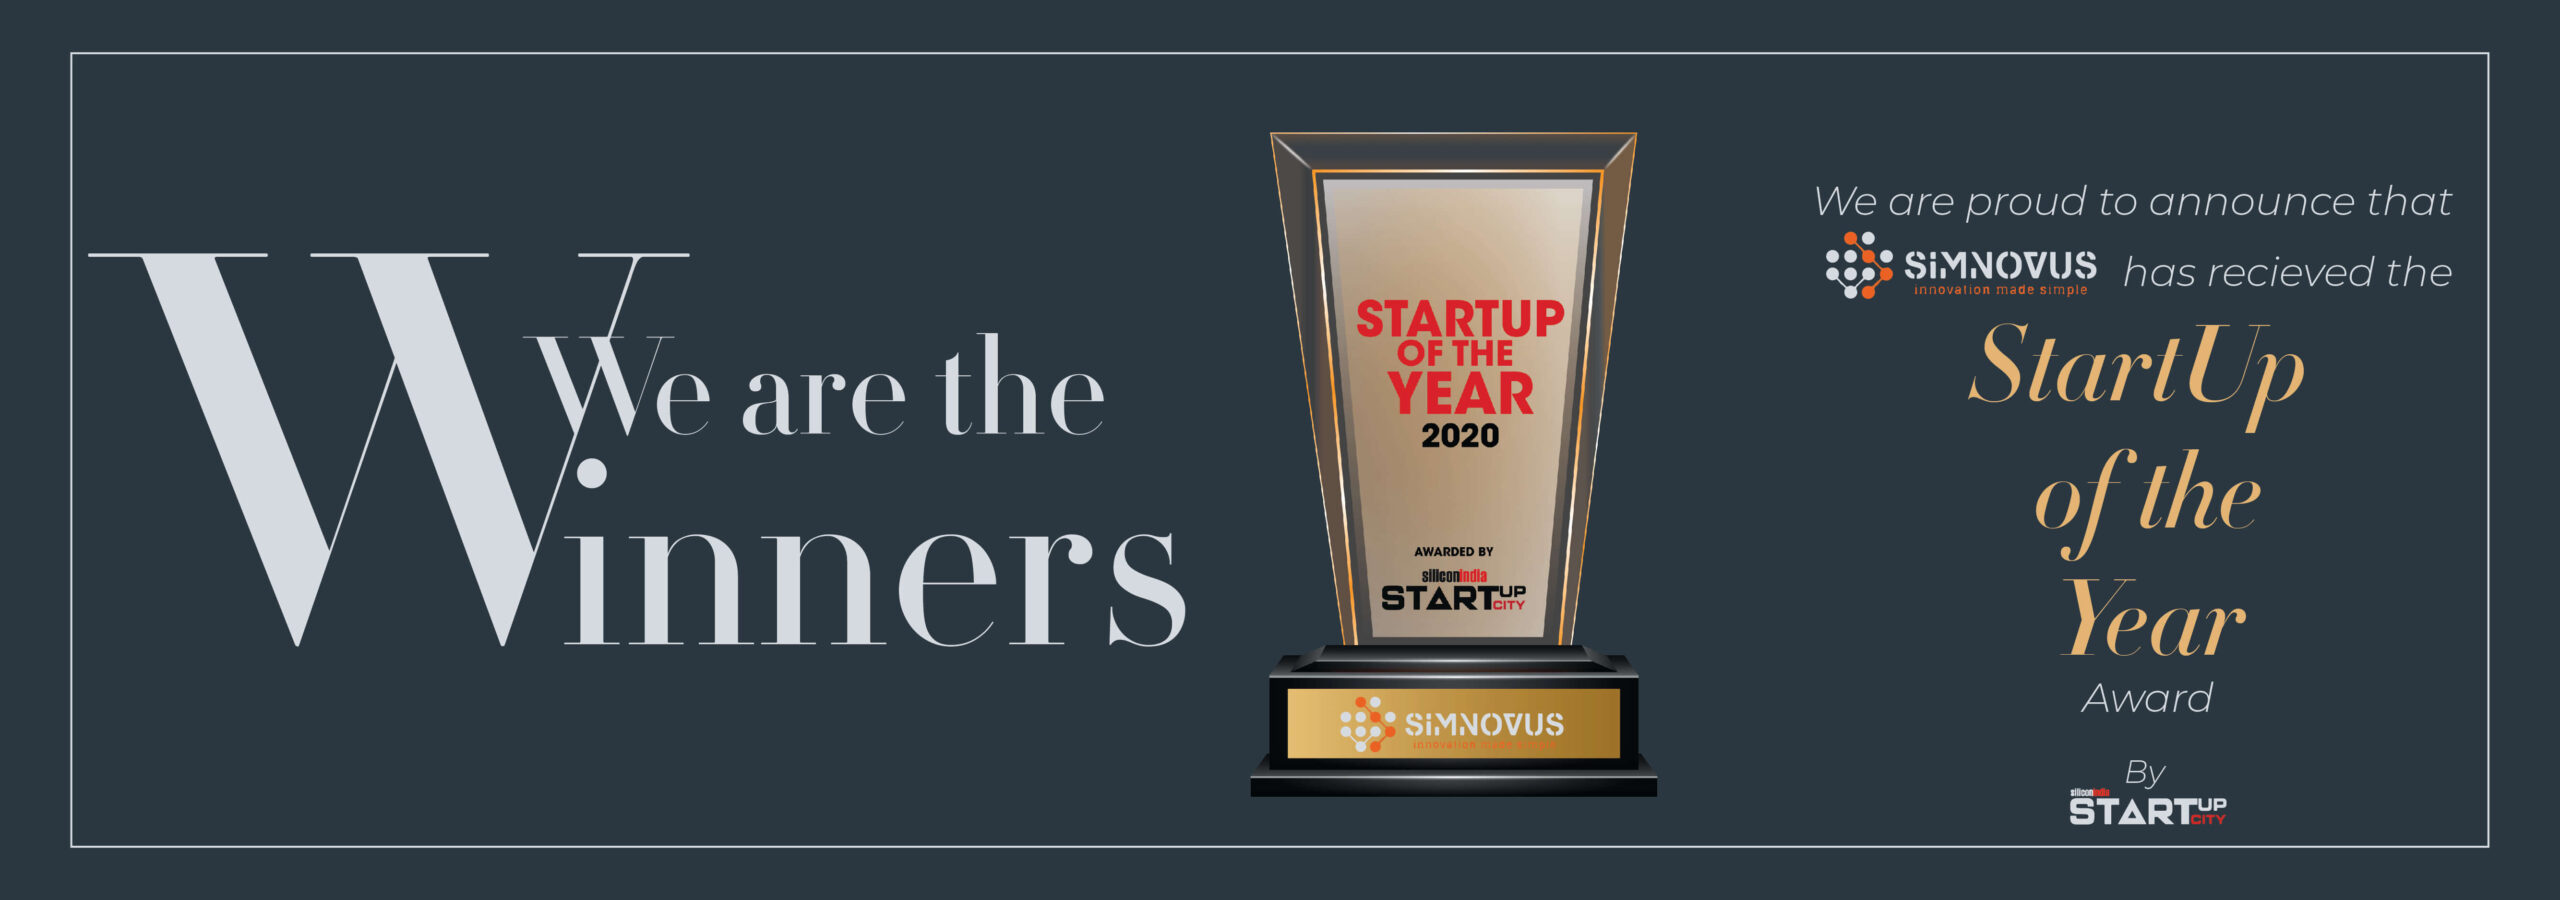 Startup of the Year 2020 award by SiliconIndia